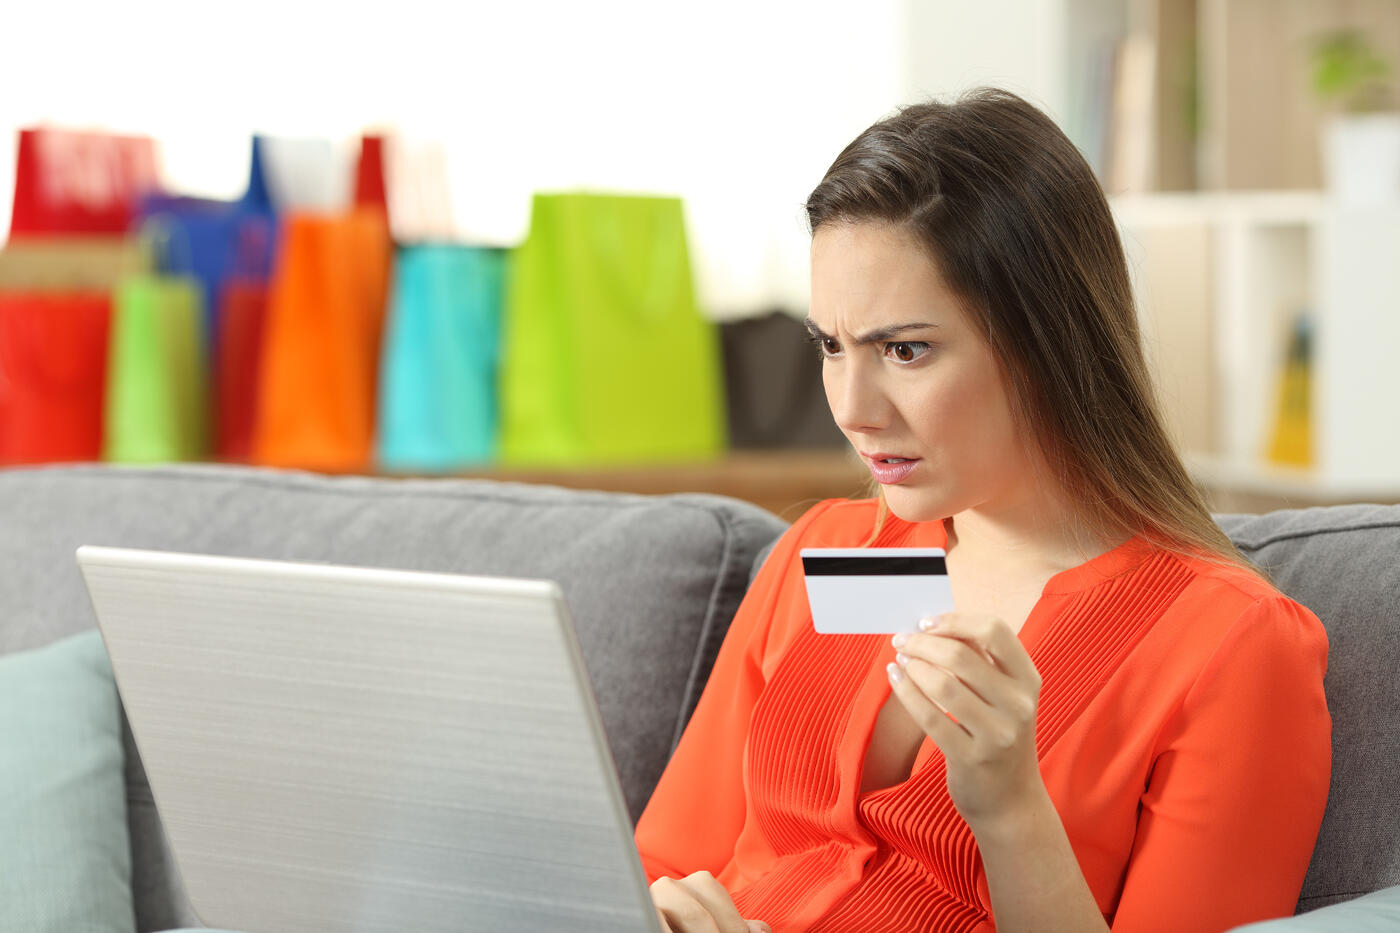 Was Your Credit Card Closed Due to Delinquency, Inactivity, or Red Flags?